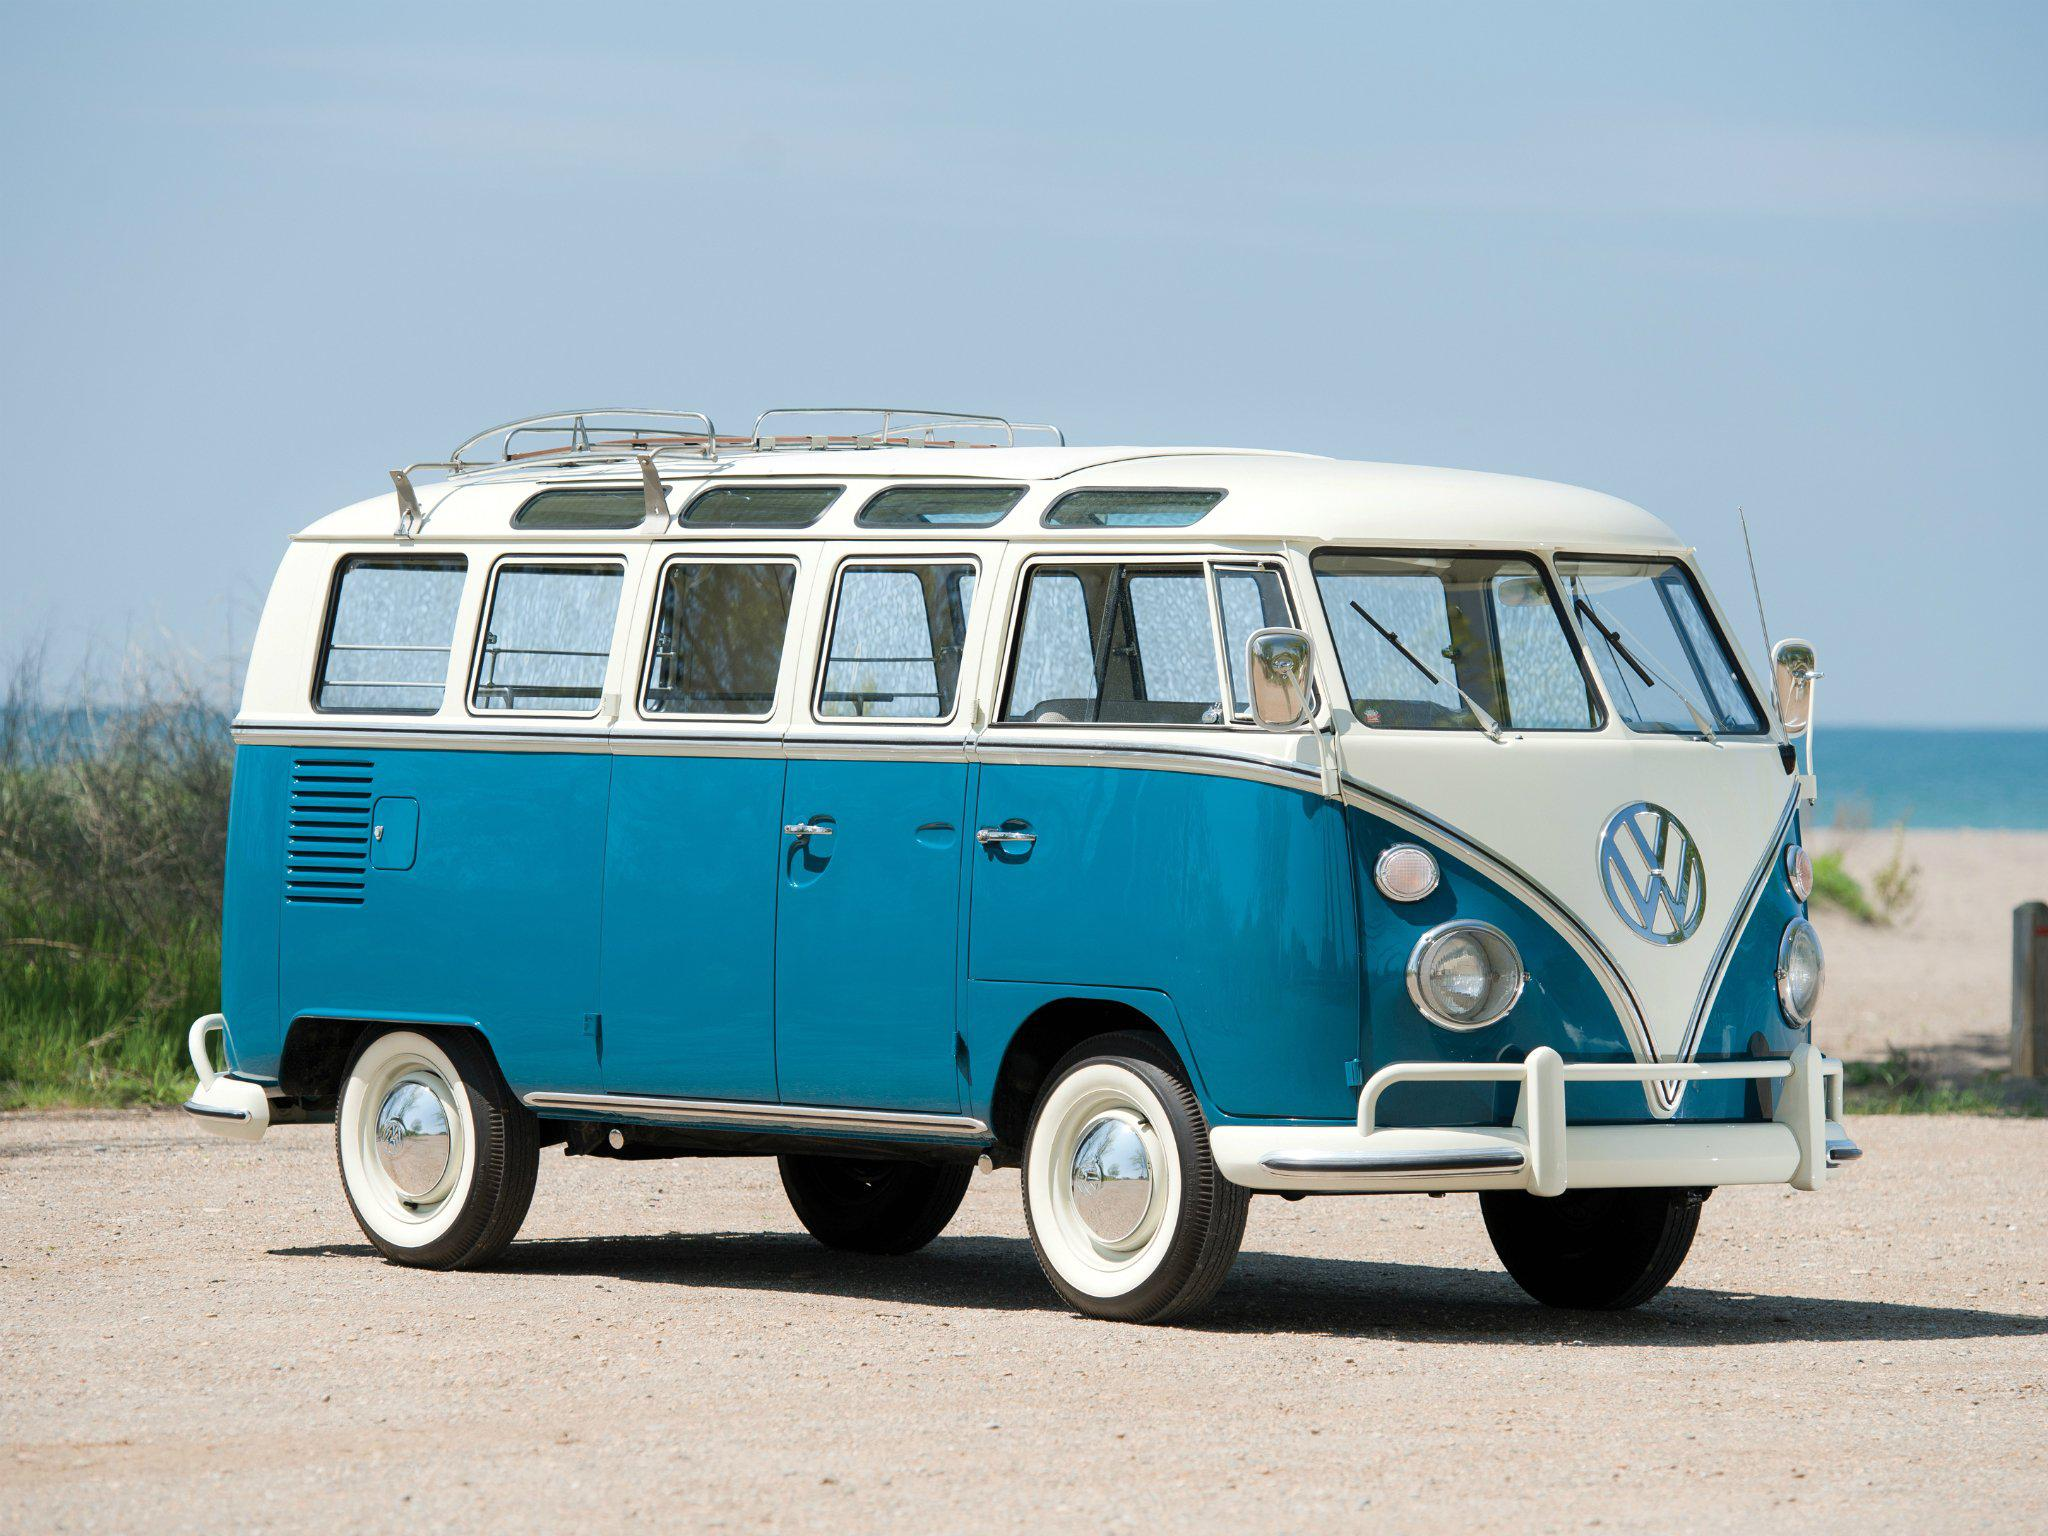 Volkswagen bus photo - 6